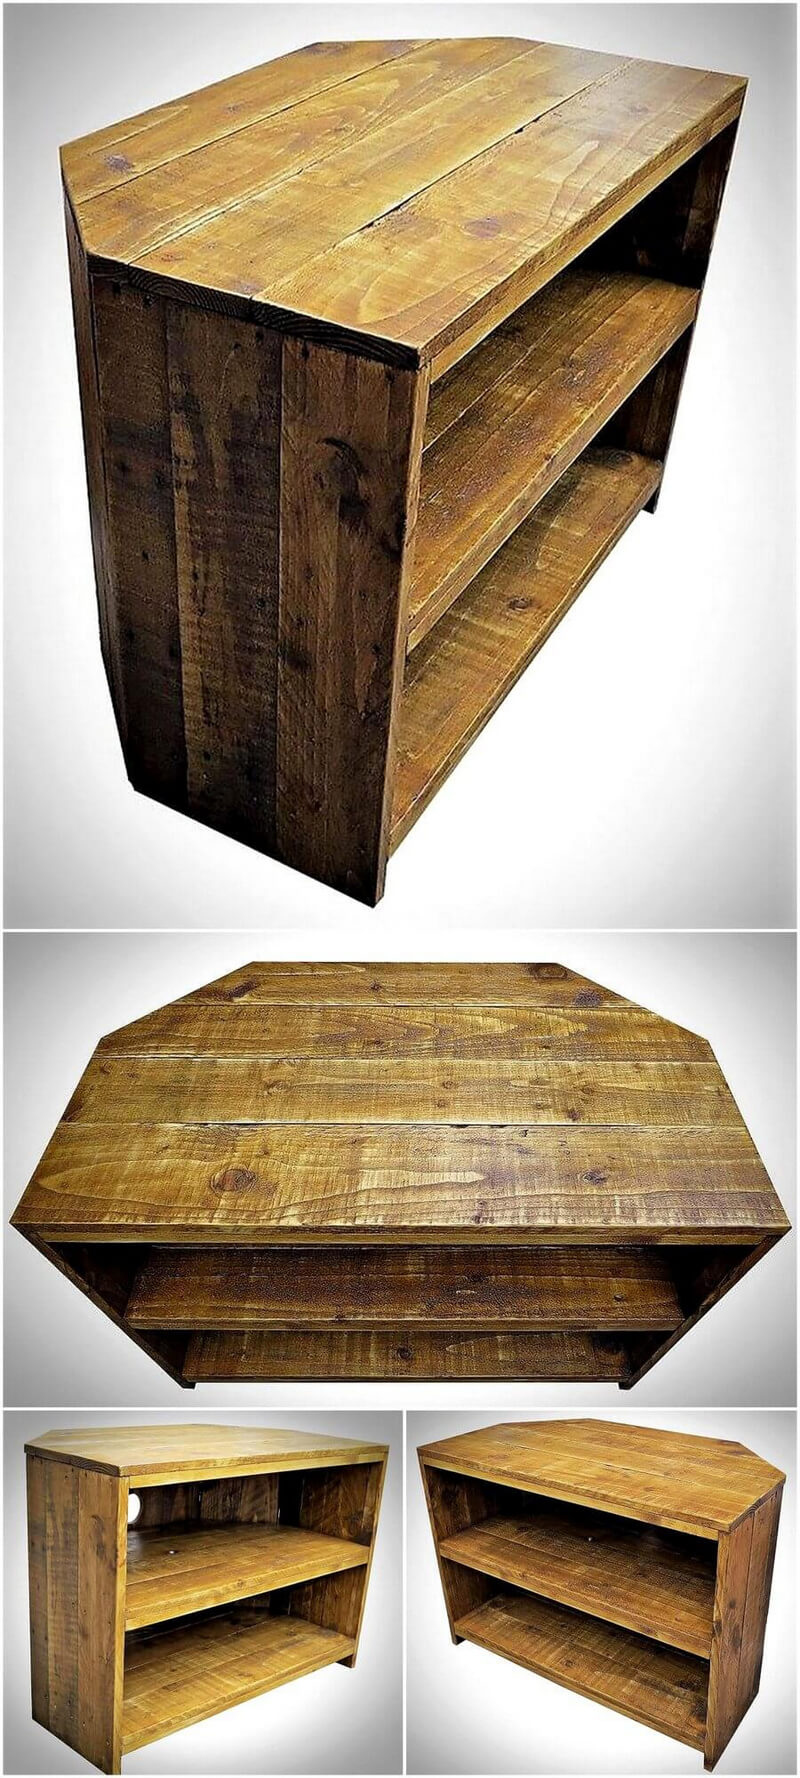 pallet side table idea 4